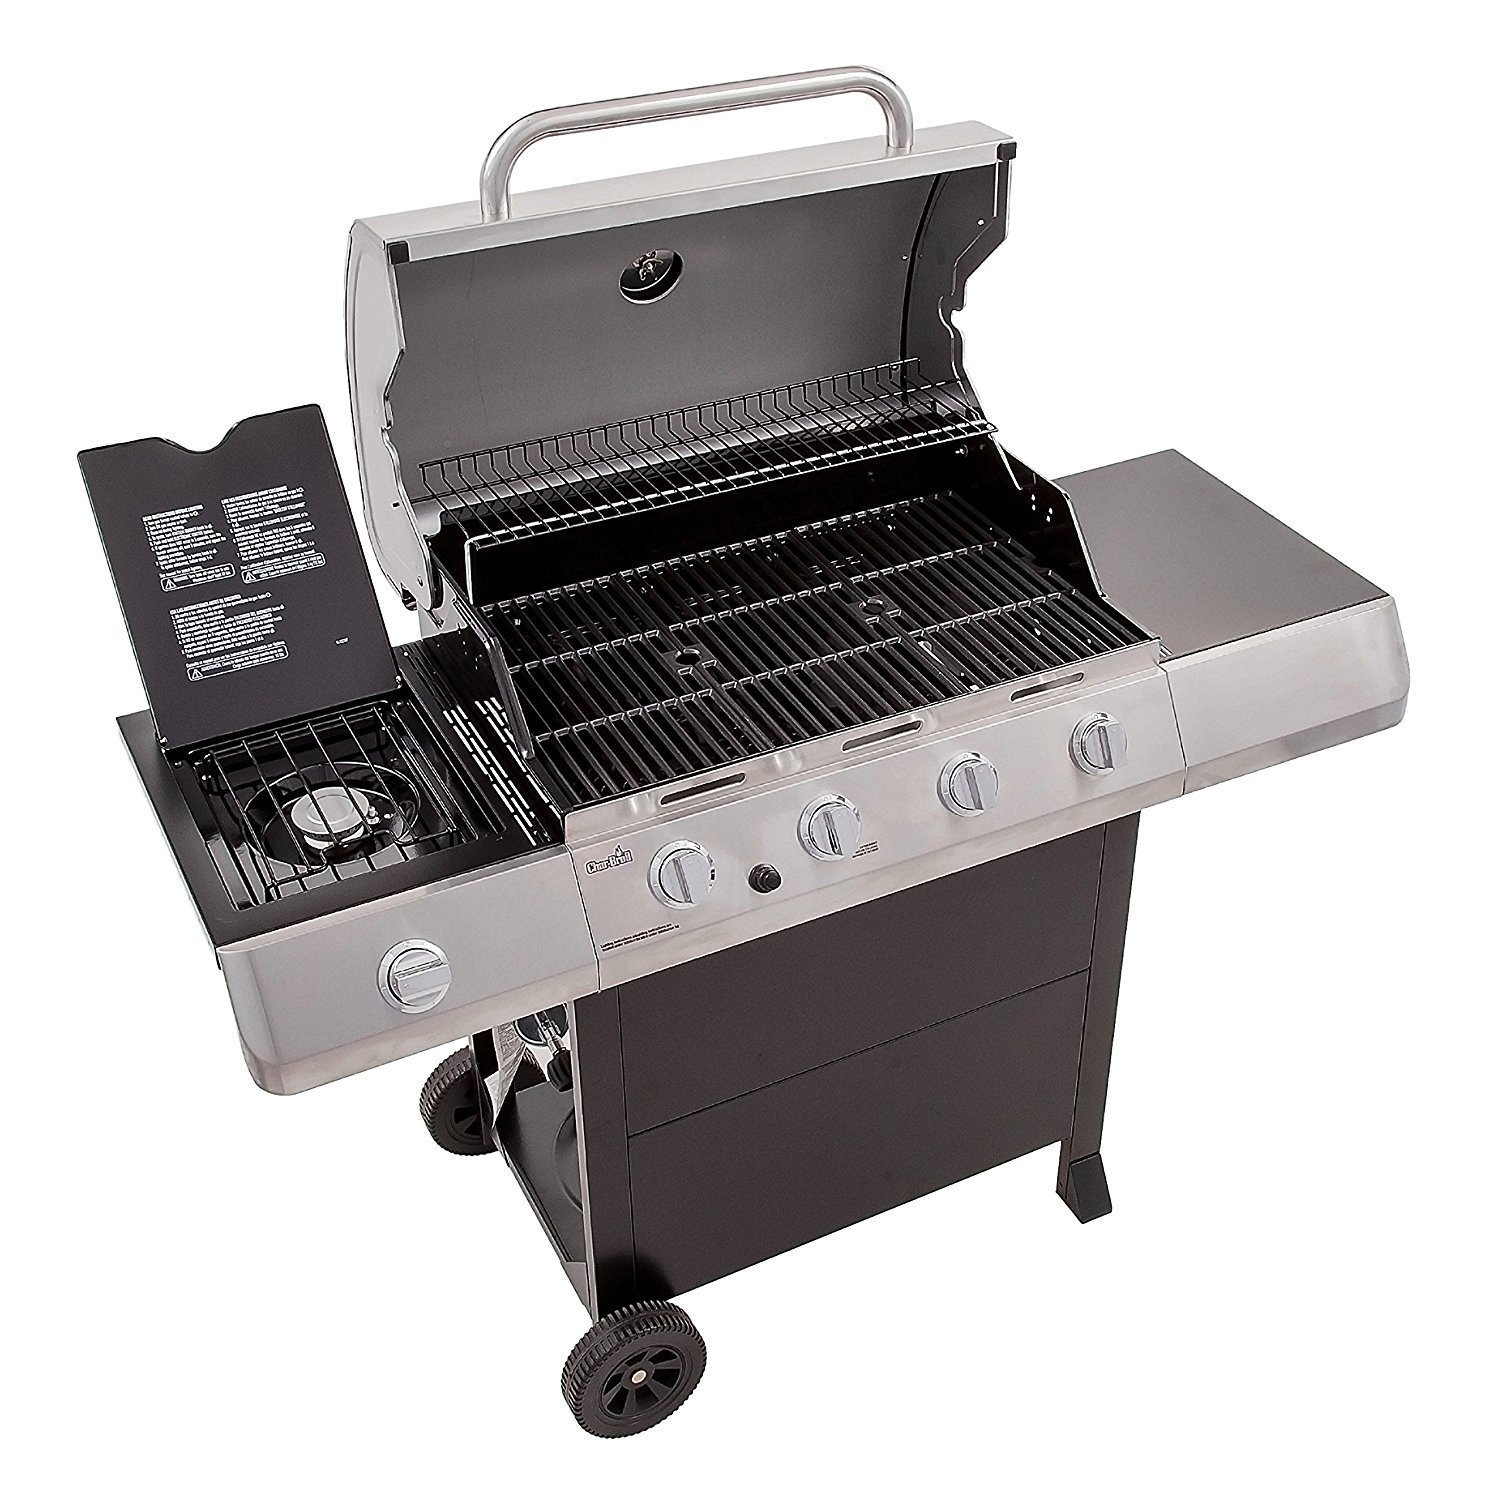 Char Broil Classic 4 Burner Grill, View Under The Hood